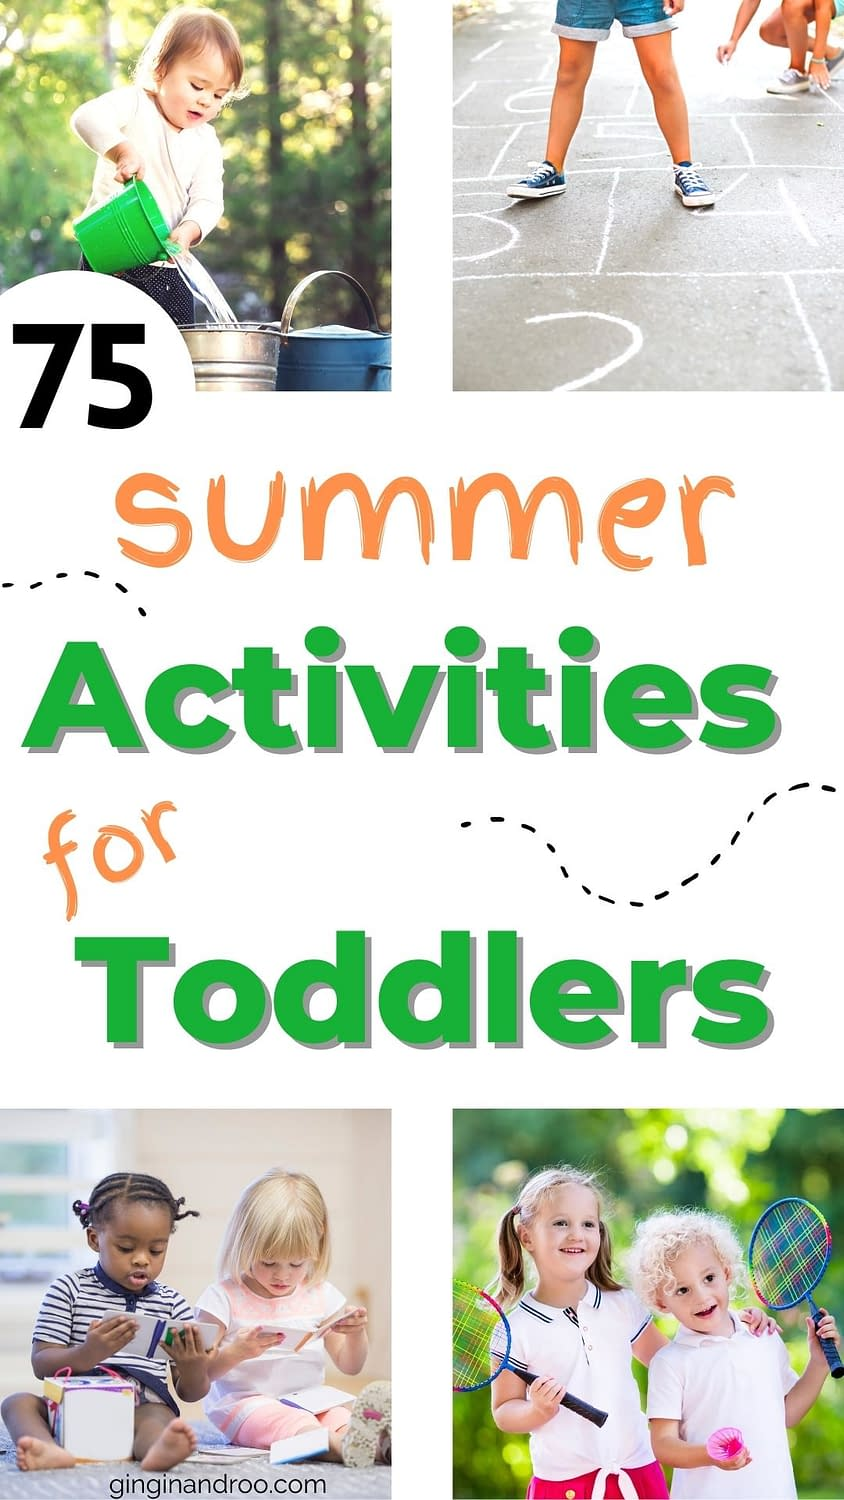 75 Summer Activities for Toddlers